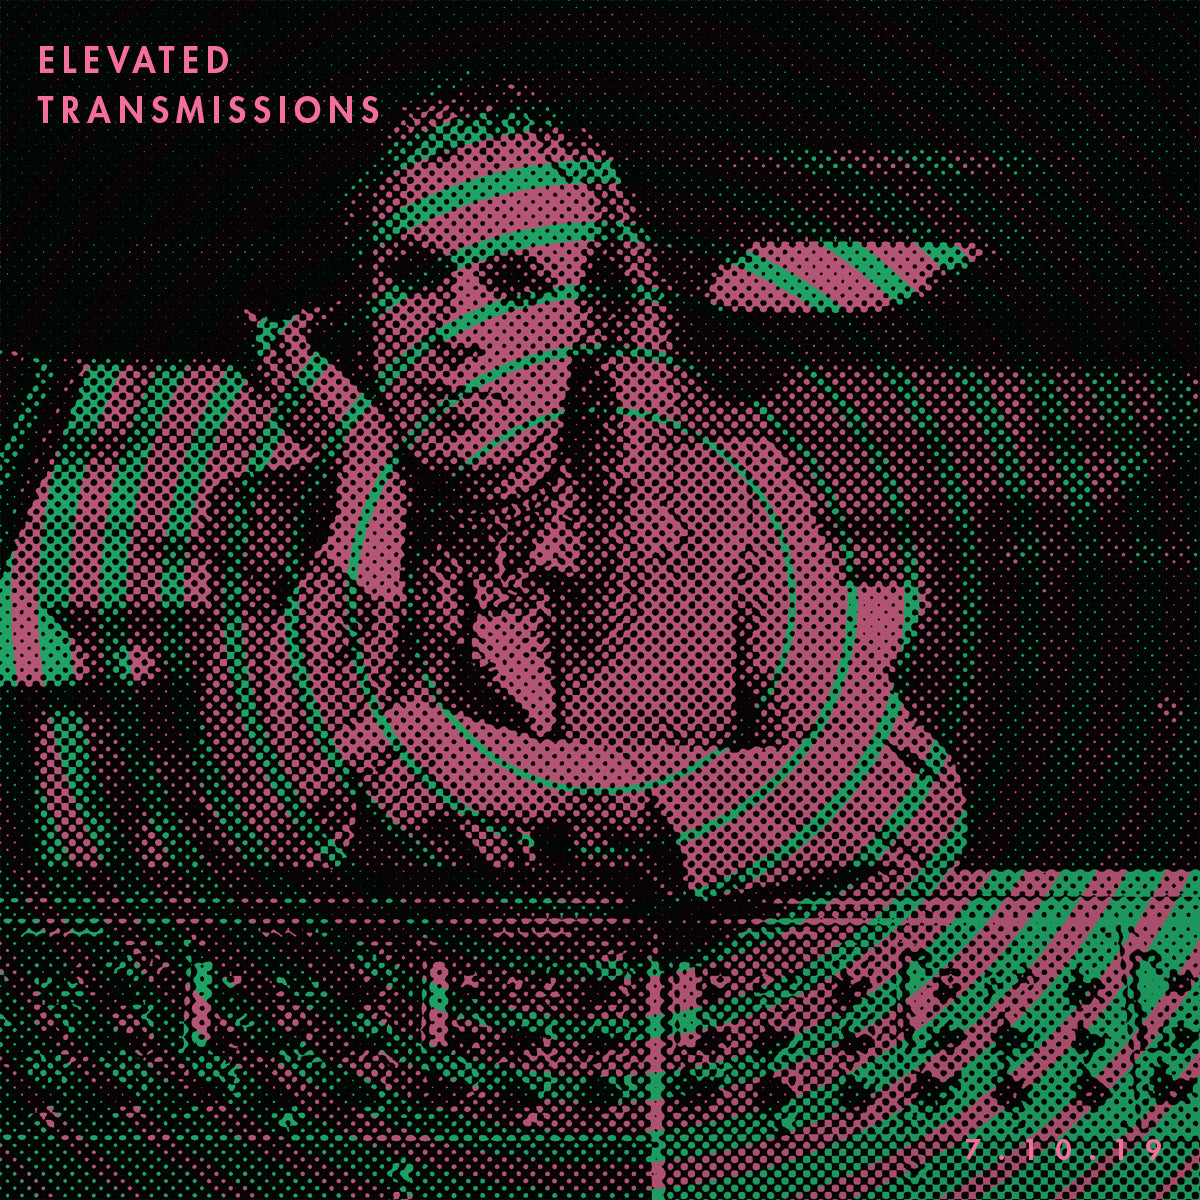 ELEVATED TRANSMISSIONS | 7.10.19